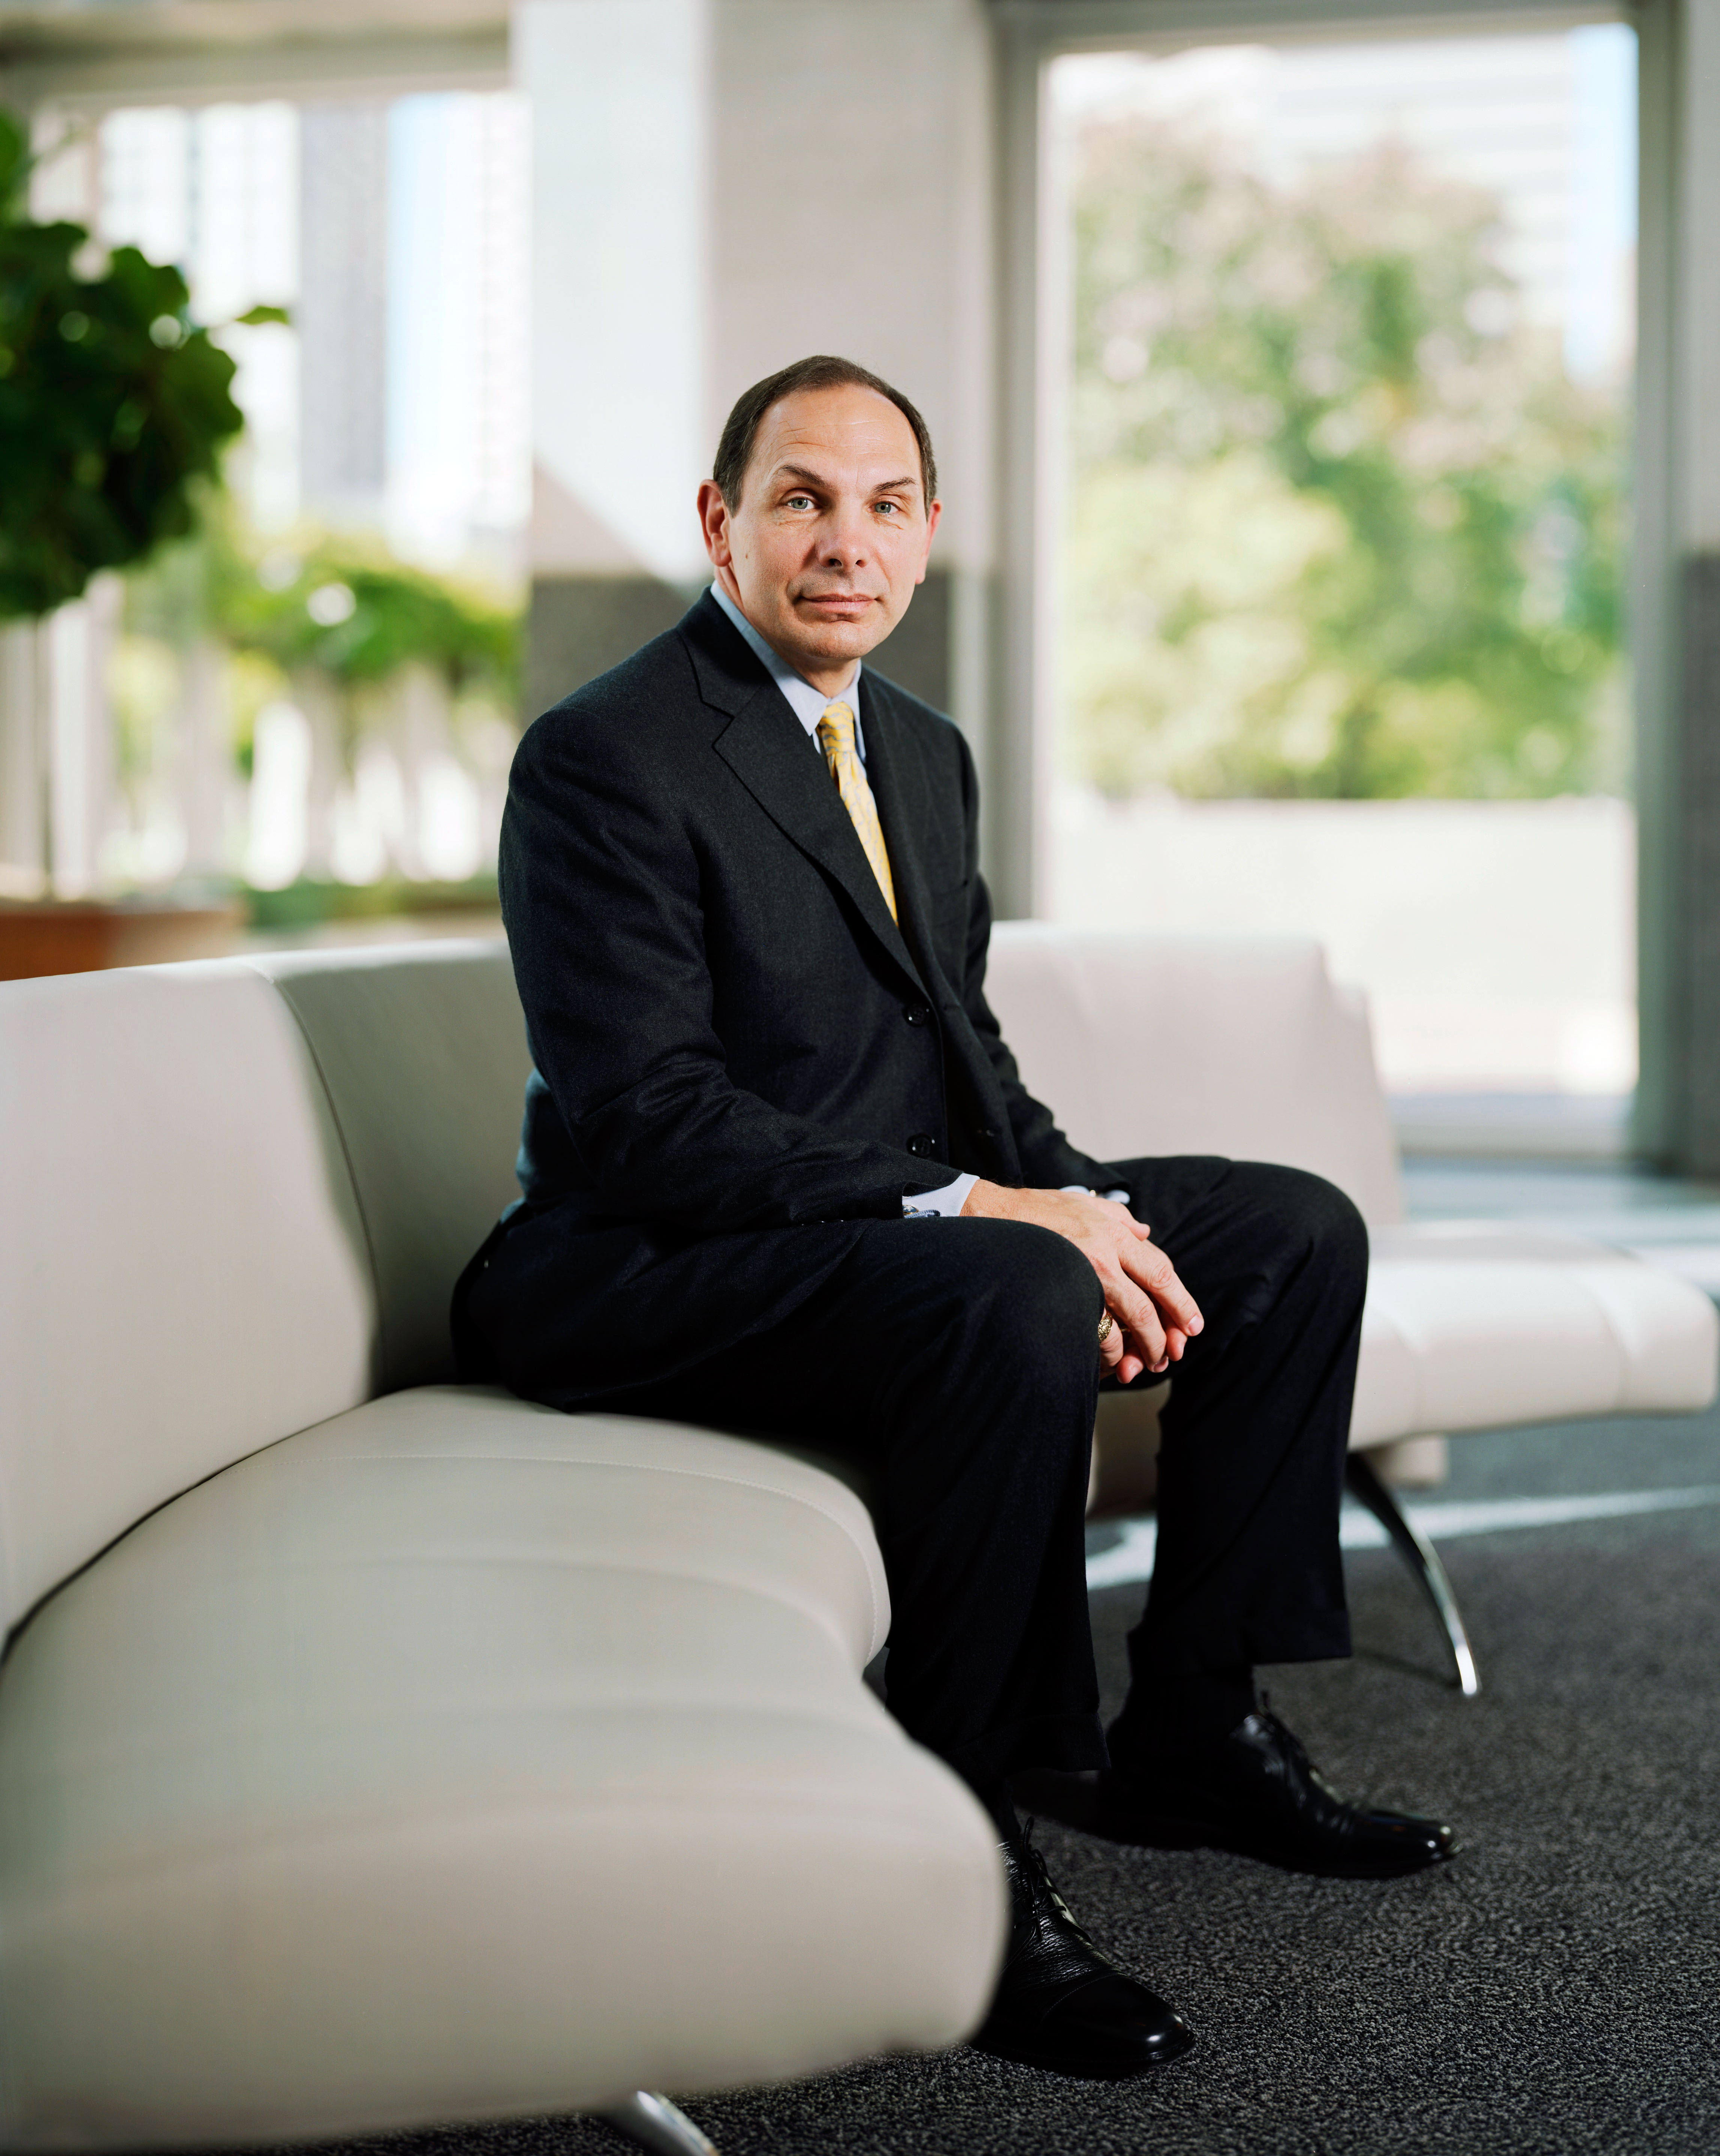 CEO Bob McDonald, pictured in 2009, has bought himself some time but still faces intense pressure.